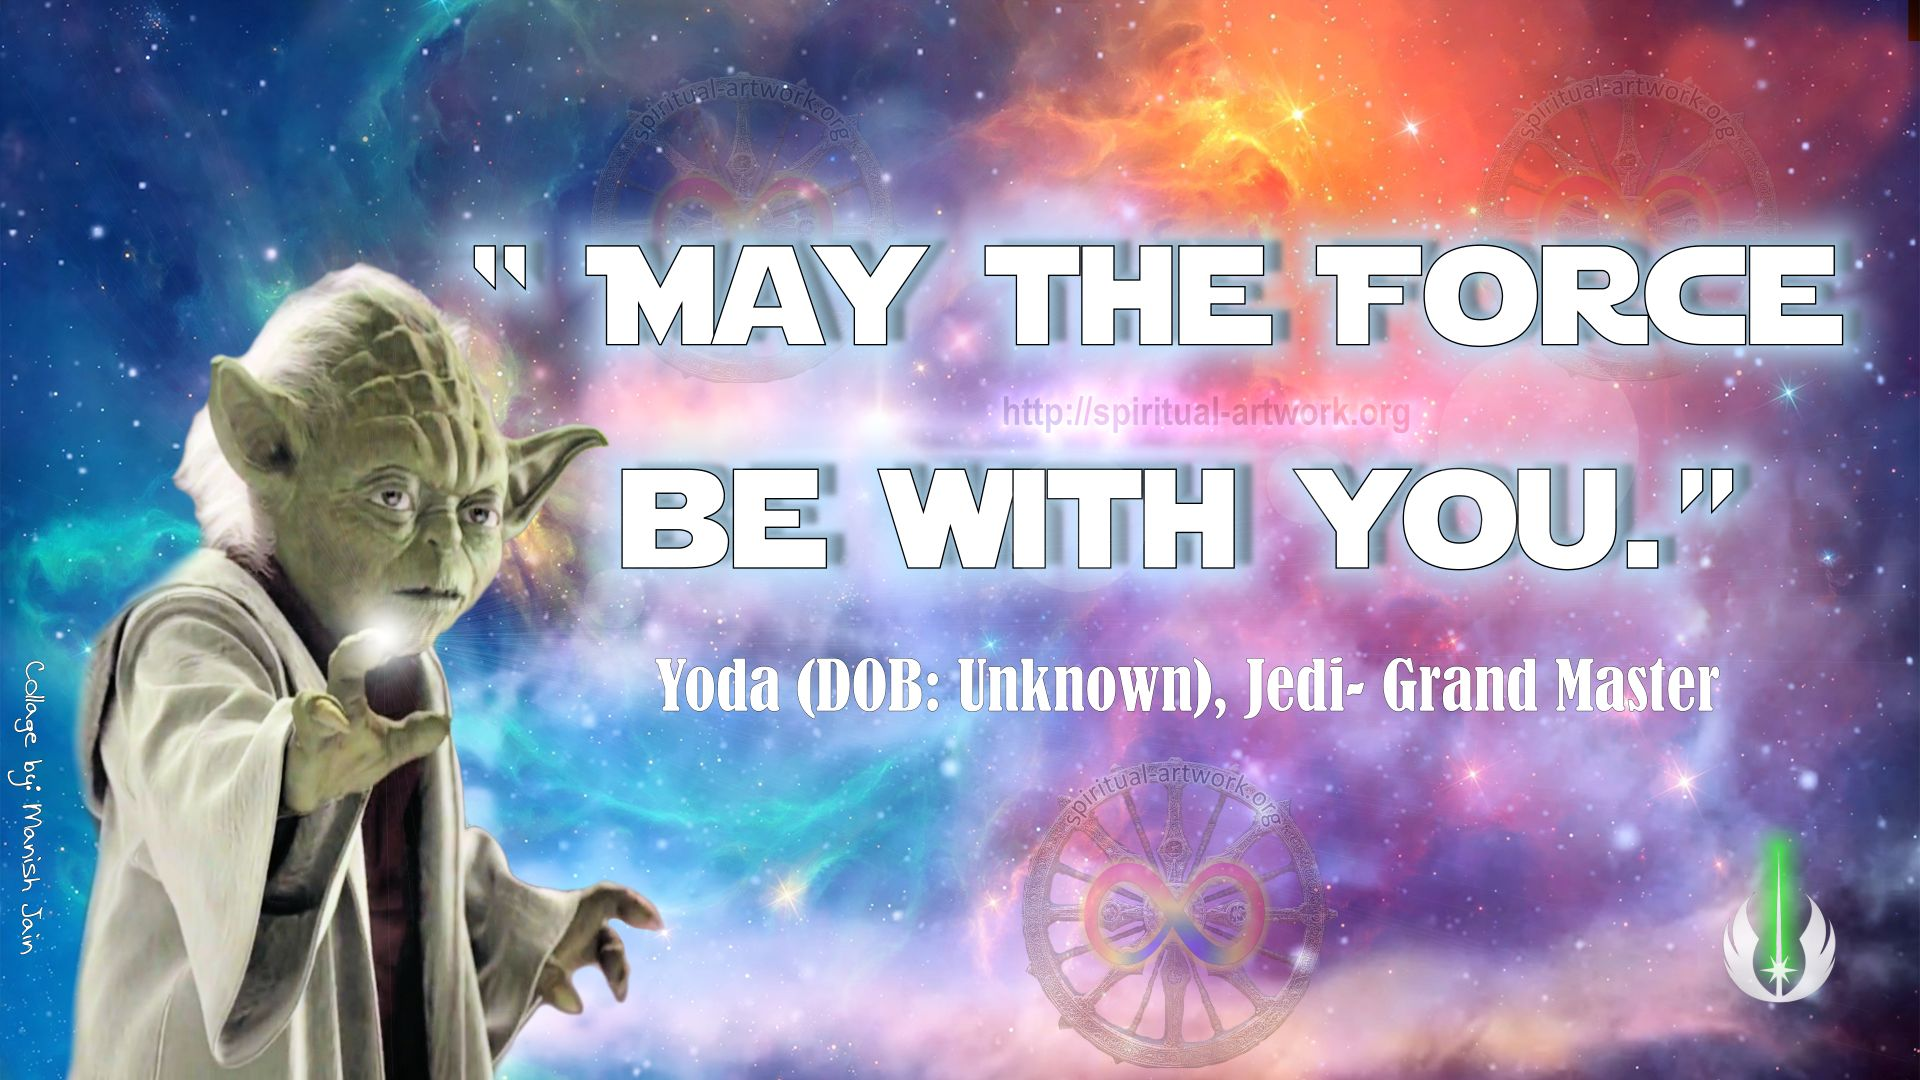 'Feeling The Force' - Star Wars and Spiritual Truth